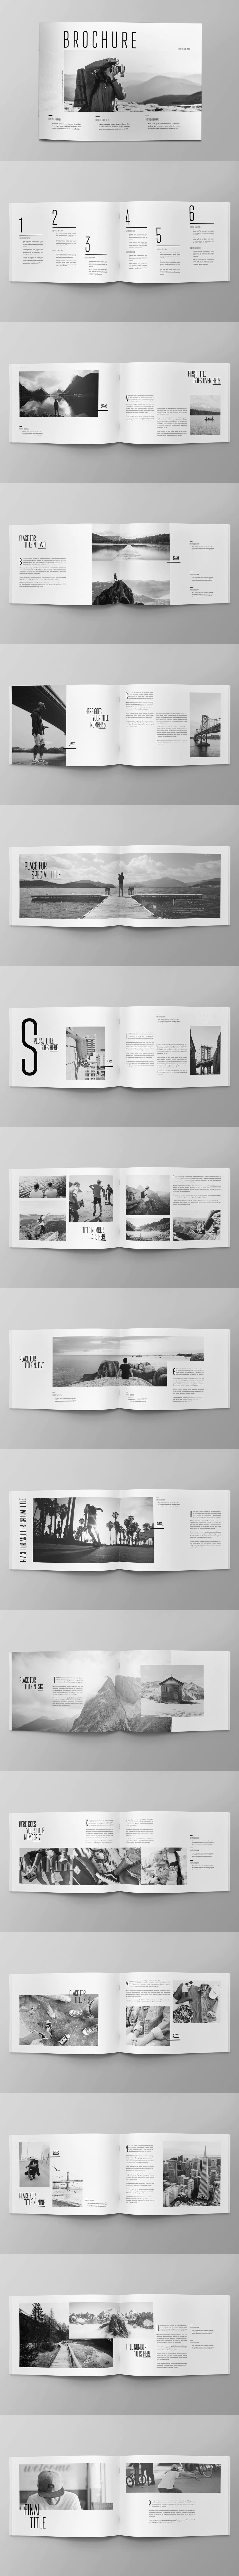 Cool Minimal Photography Brochure Template InDesign INDD - A4 and US ...